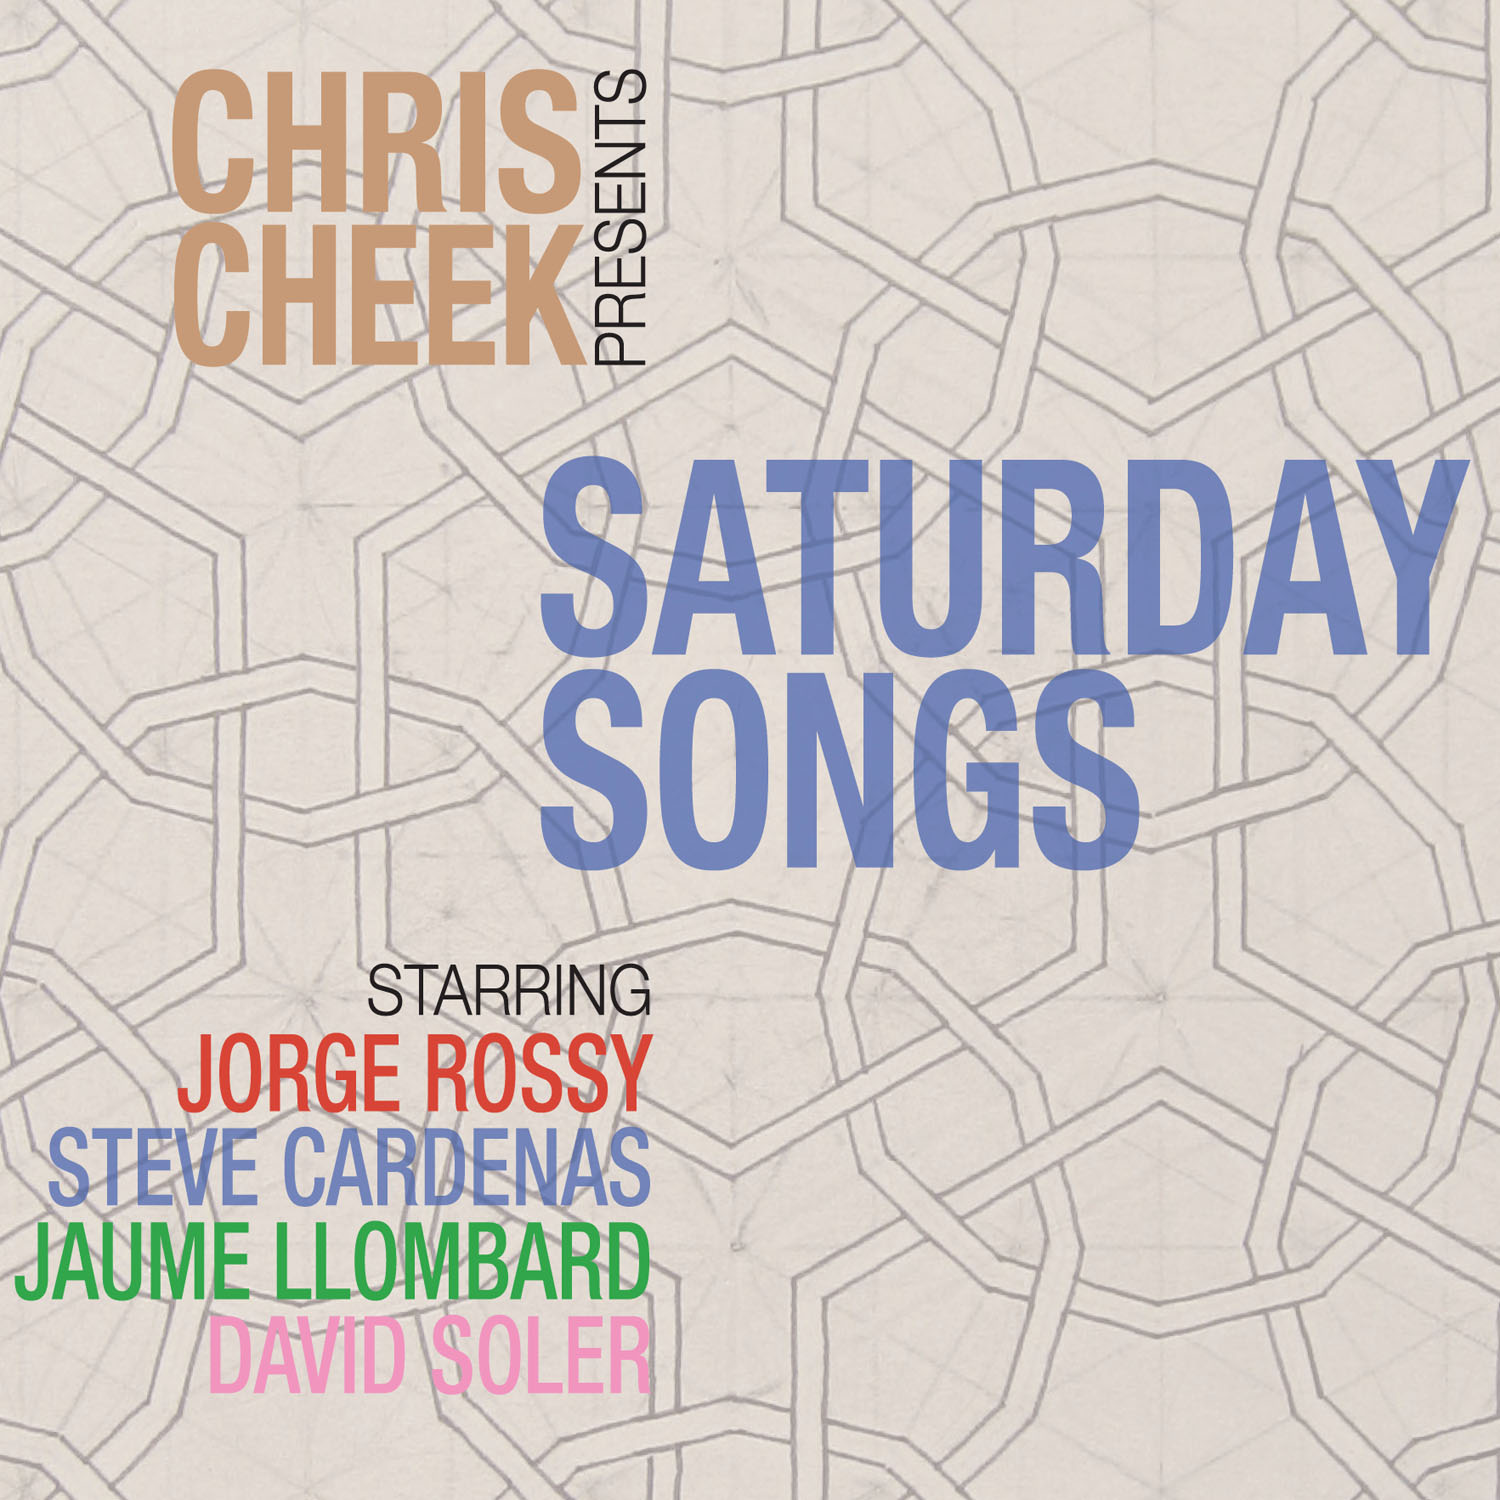 Saturday Songs  by Chris  Cheek cover